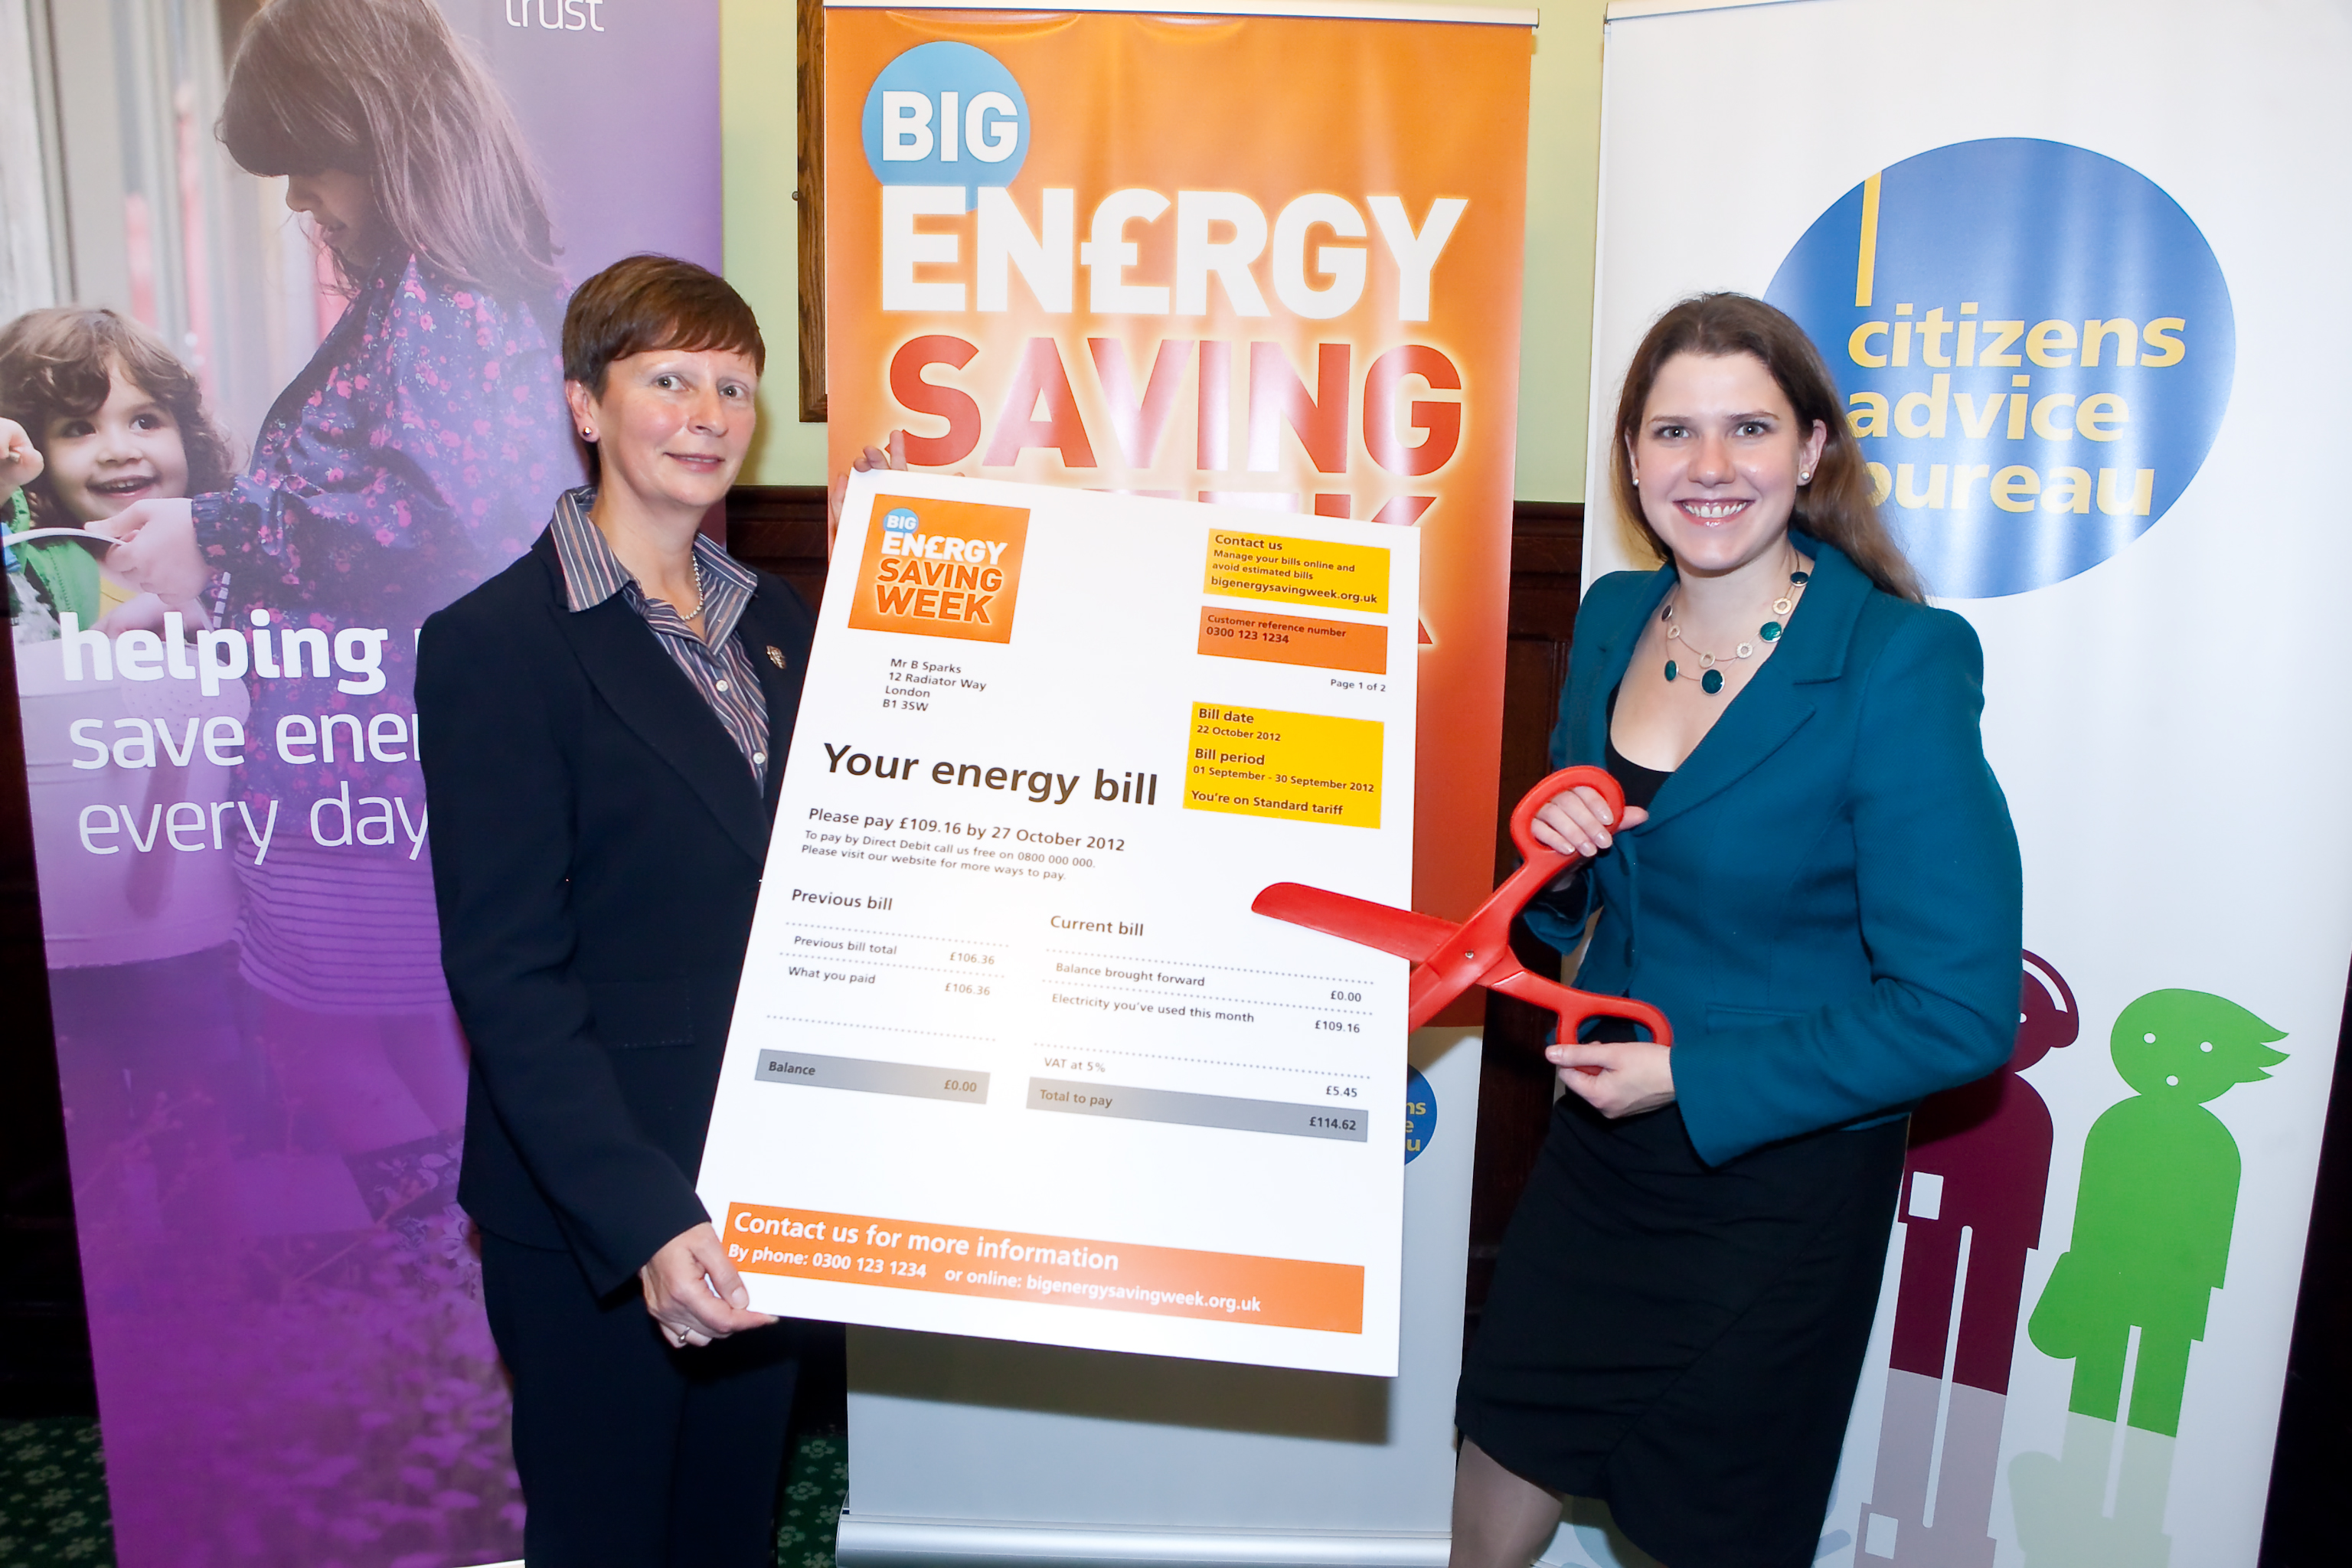 12-10-22_Jo_and_Gillian_Guy_Citizens_Advice_Big_Energy_Savings_Week.jpg